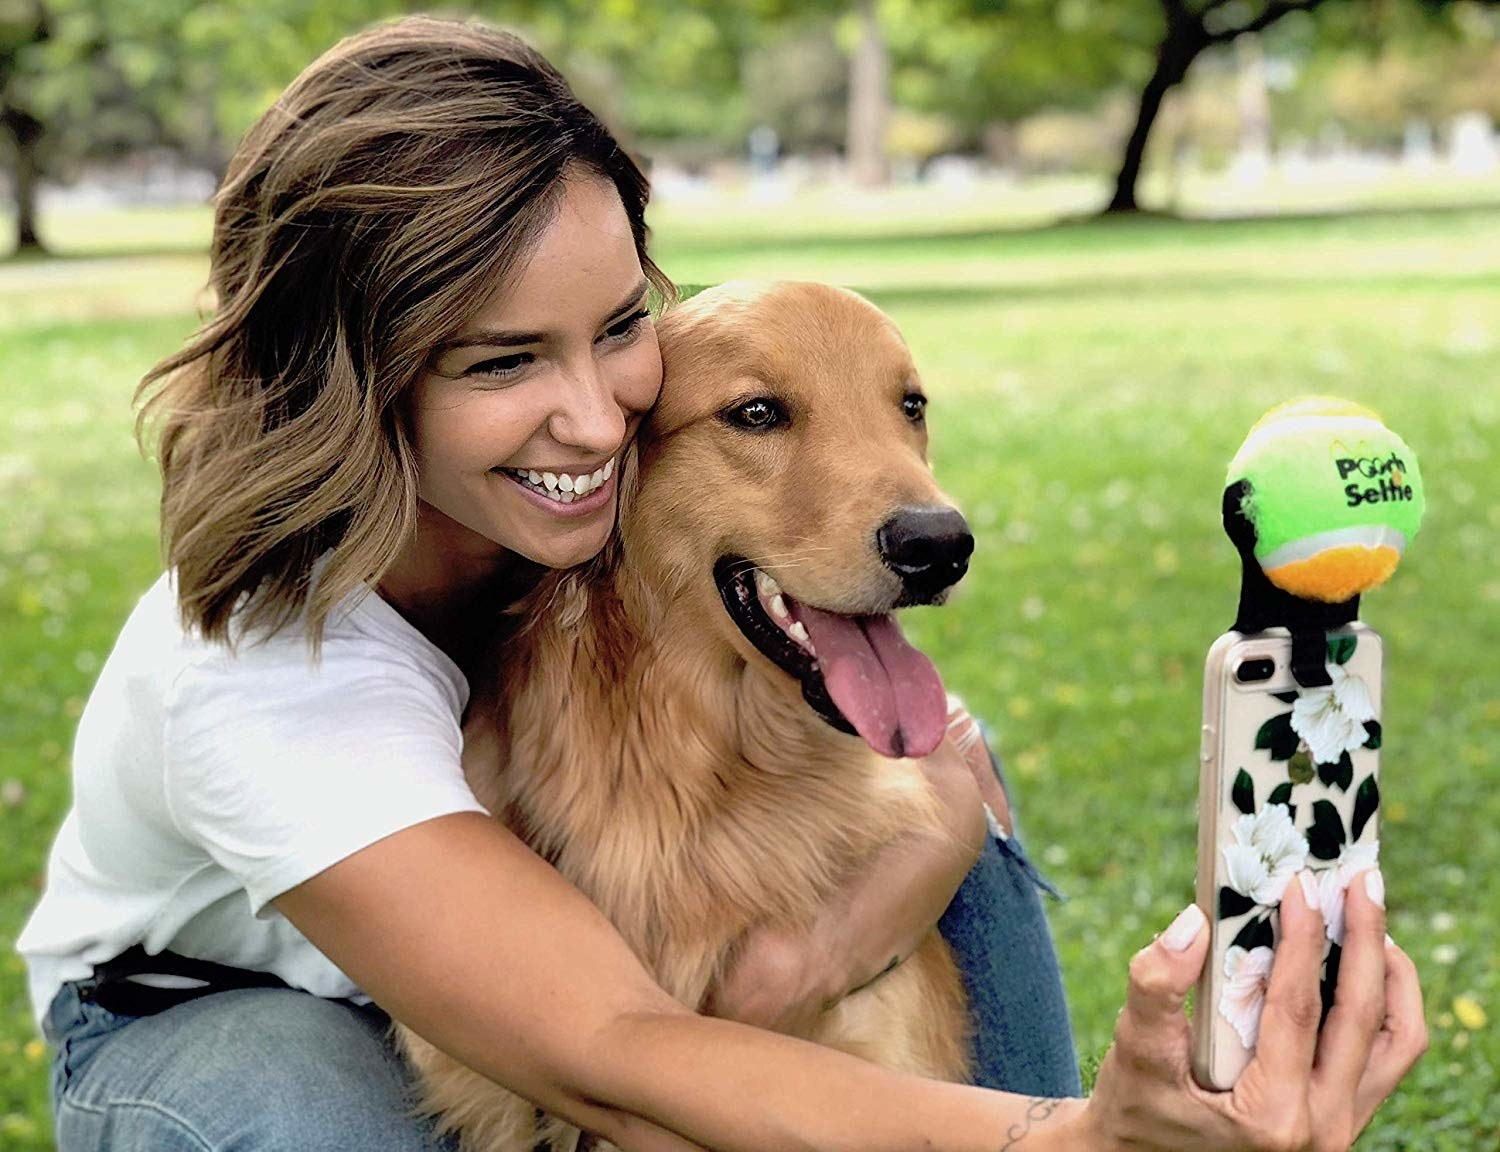 A person holding their dog and taking a selfie. The dog is looking right at the tennis ball attached to the phone.